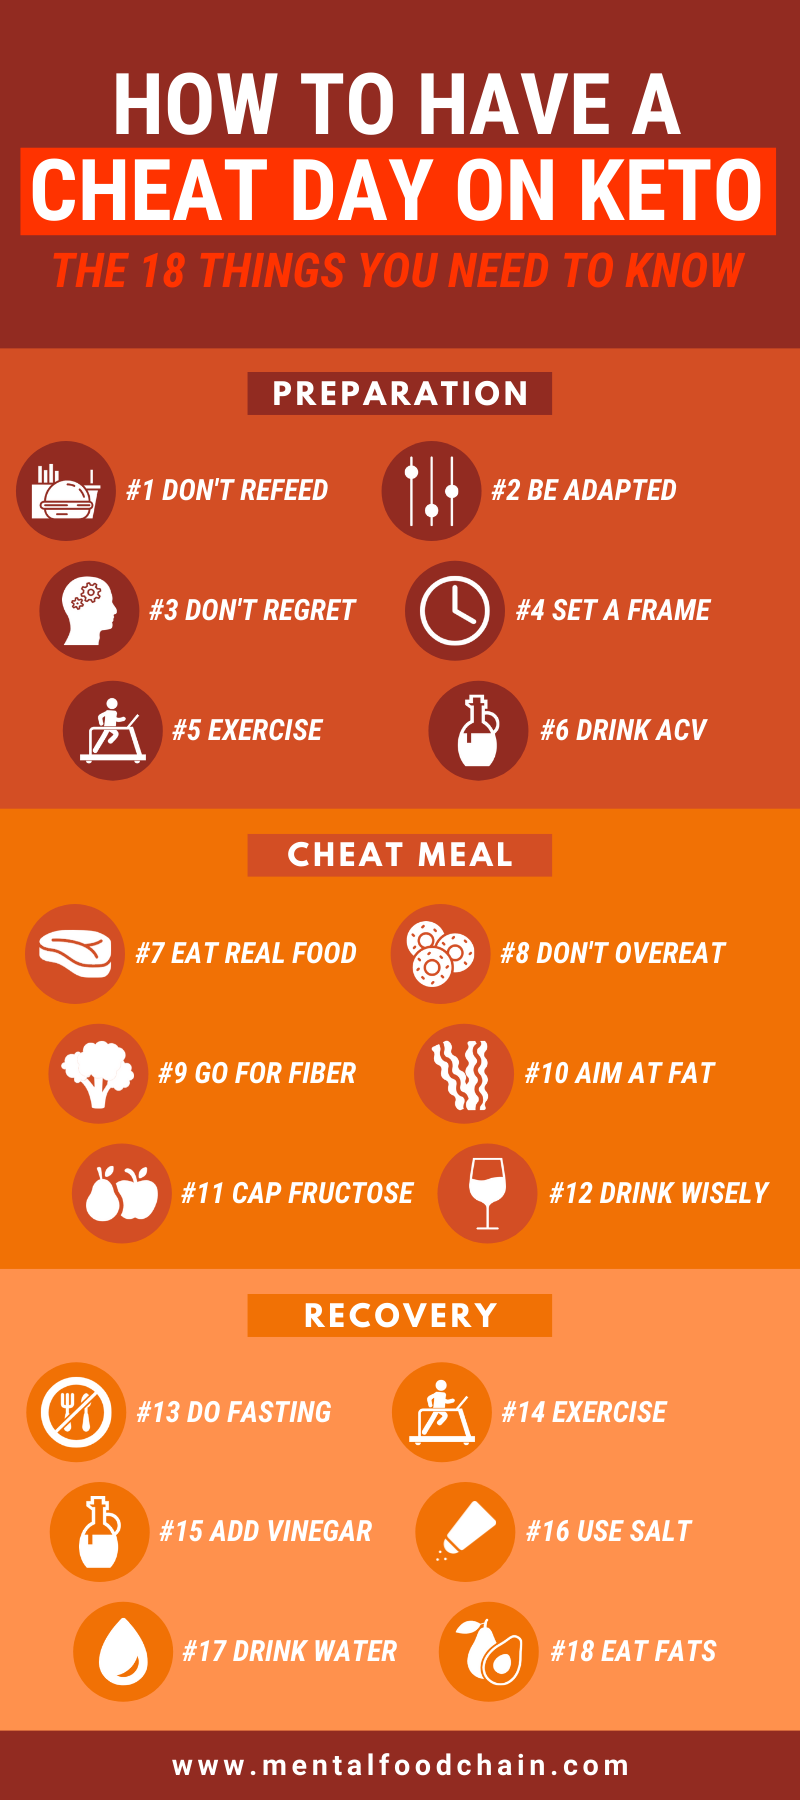 How To Have A Cheat Day On Keto 18 Tips You Need To Know